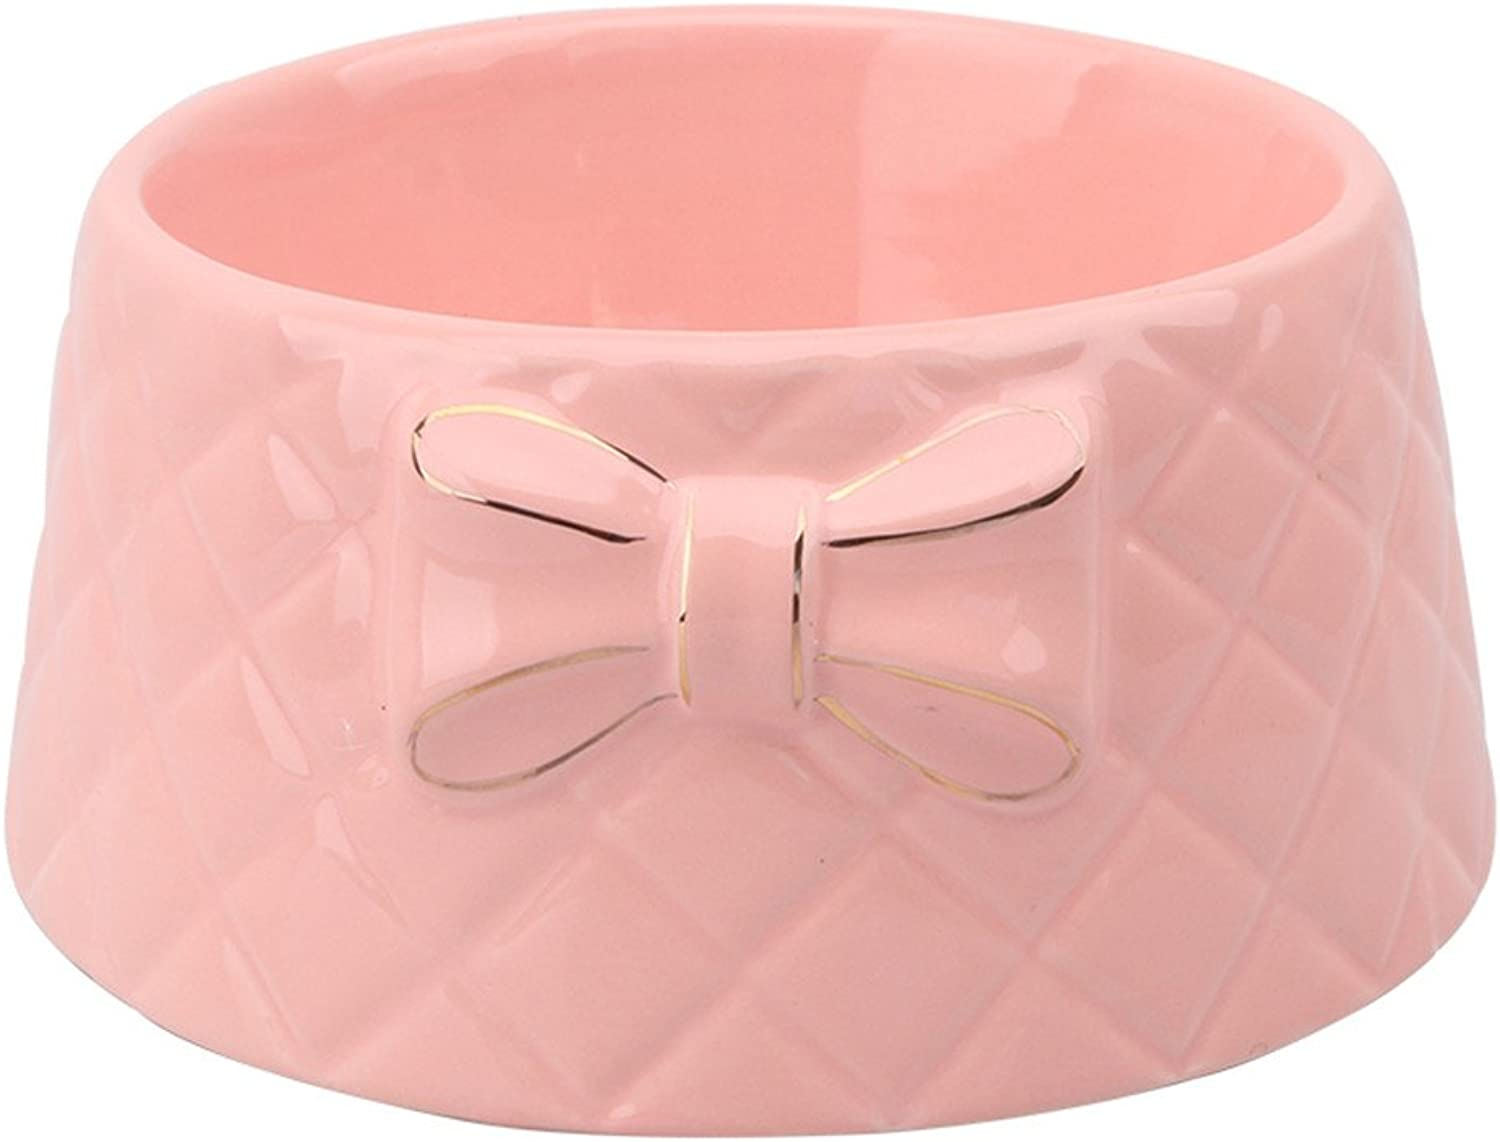 ForeverYou Pet Ceramic Bowl Dog cat Food Bowl Water Bowl Cute Bow Bone Bowl, Pink